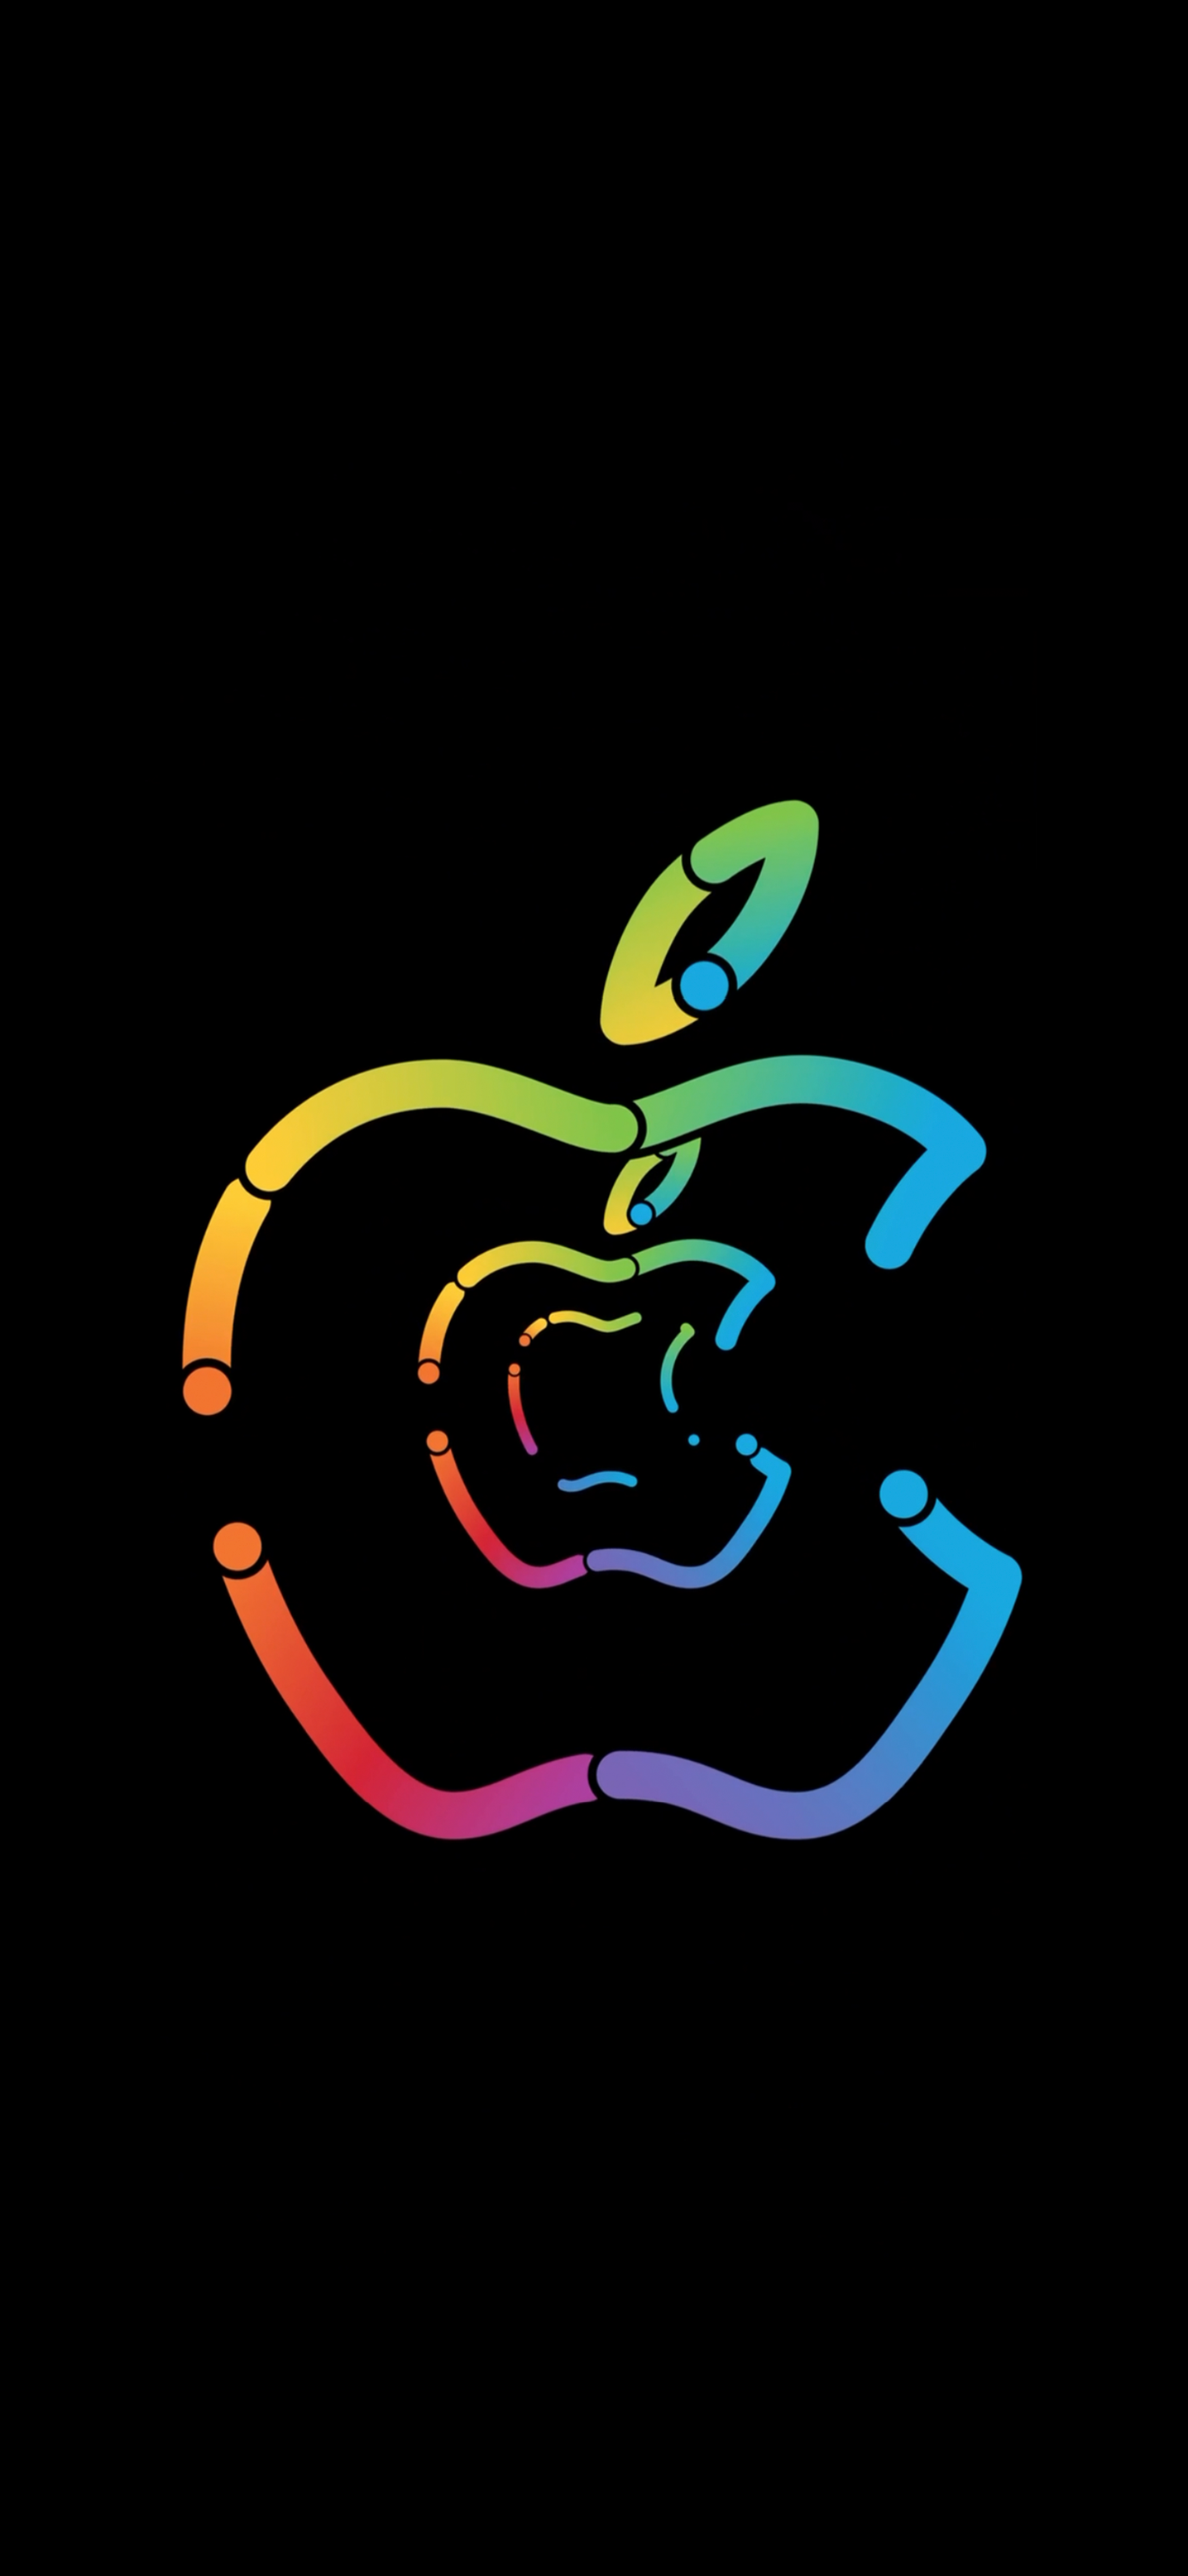 Apple Logo Animation Iphone 11 Promotional Live Wallpaper